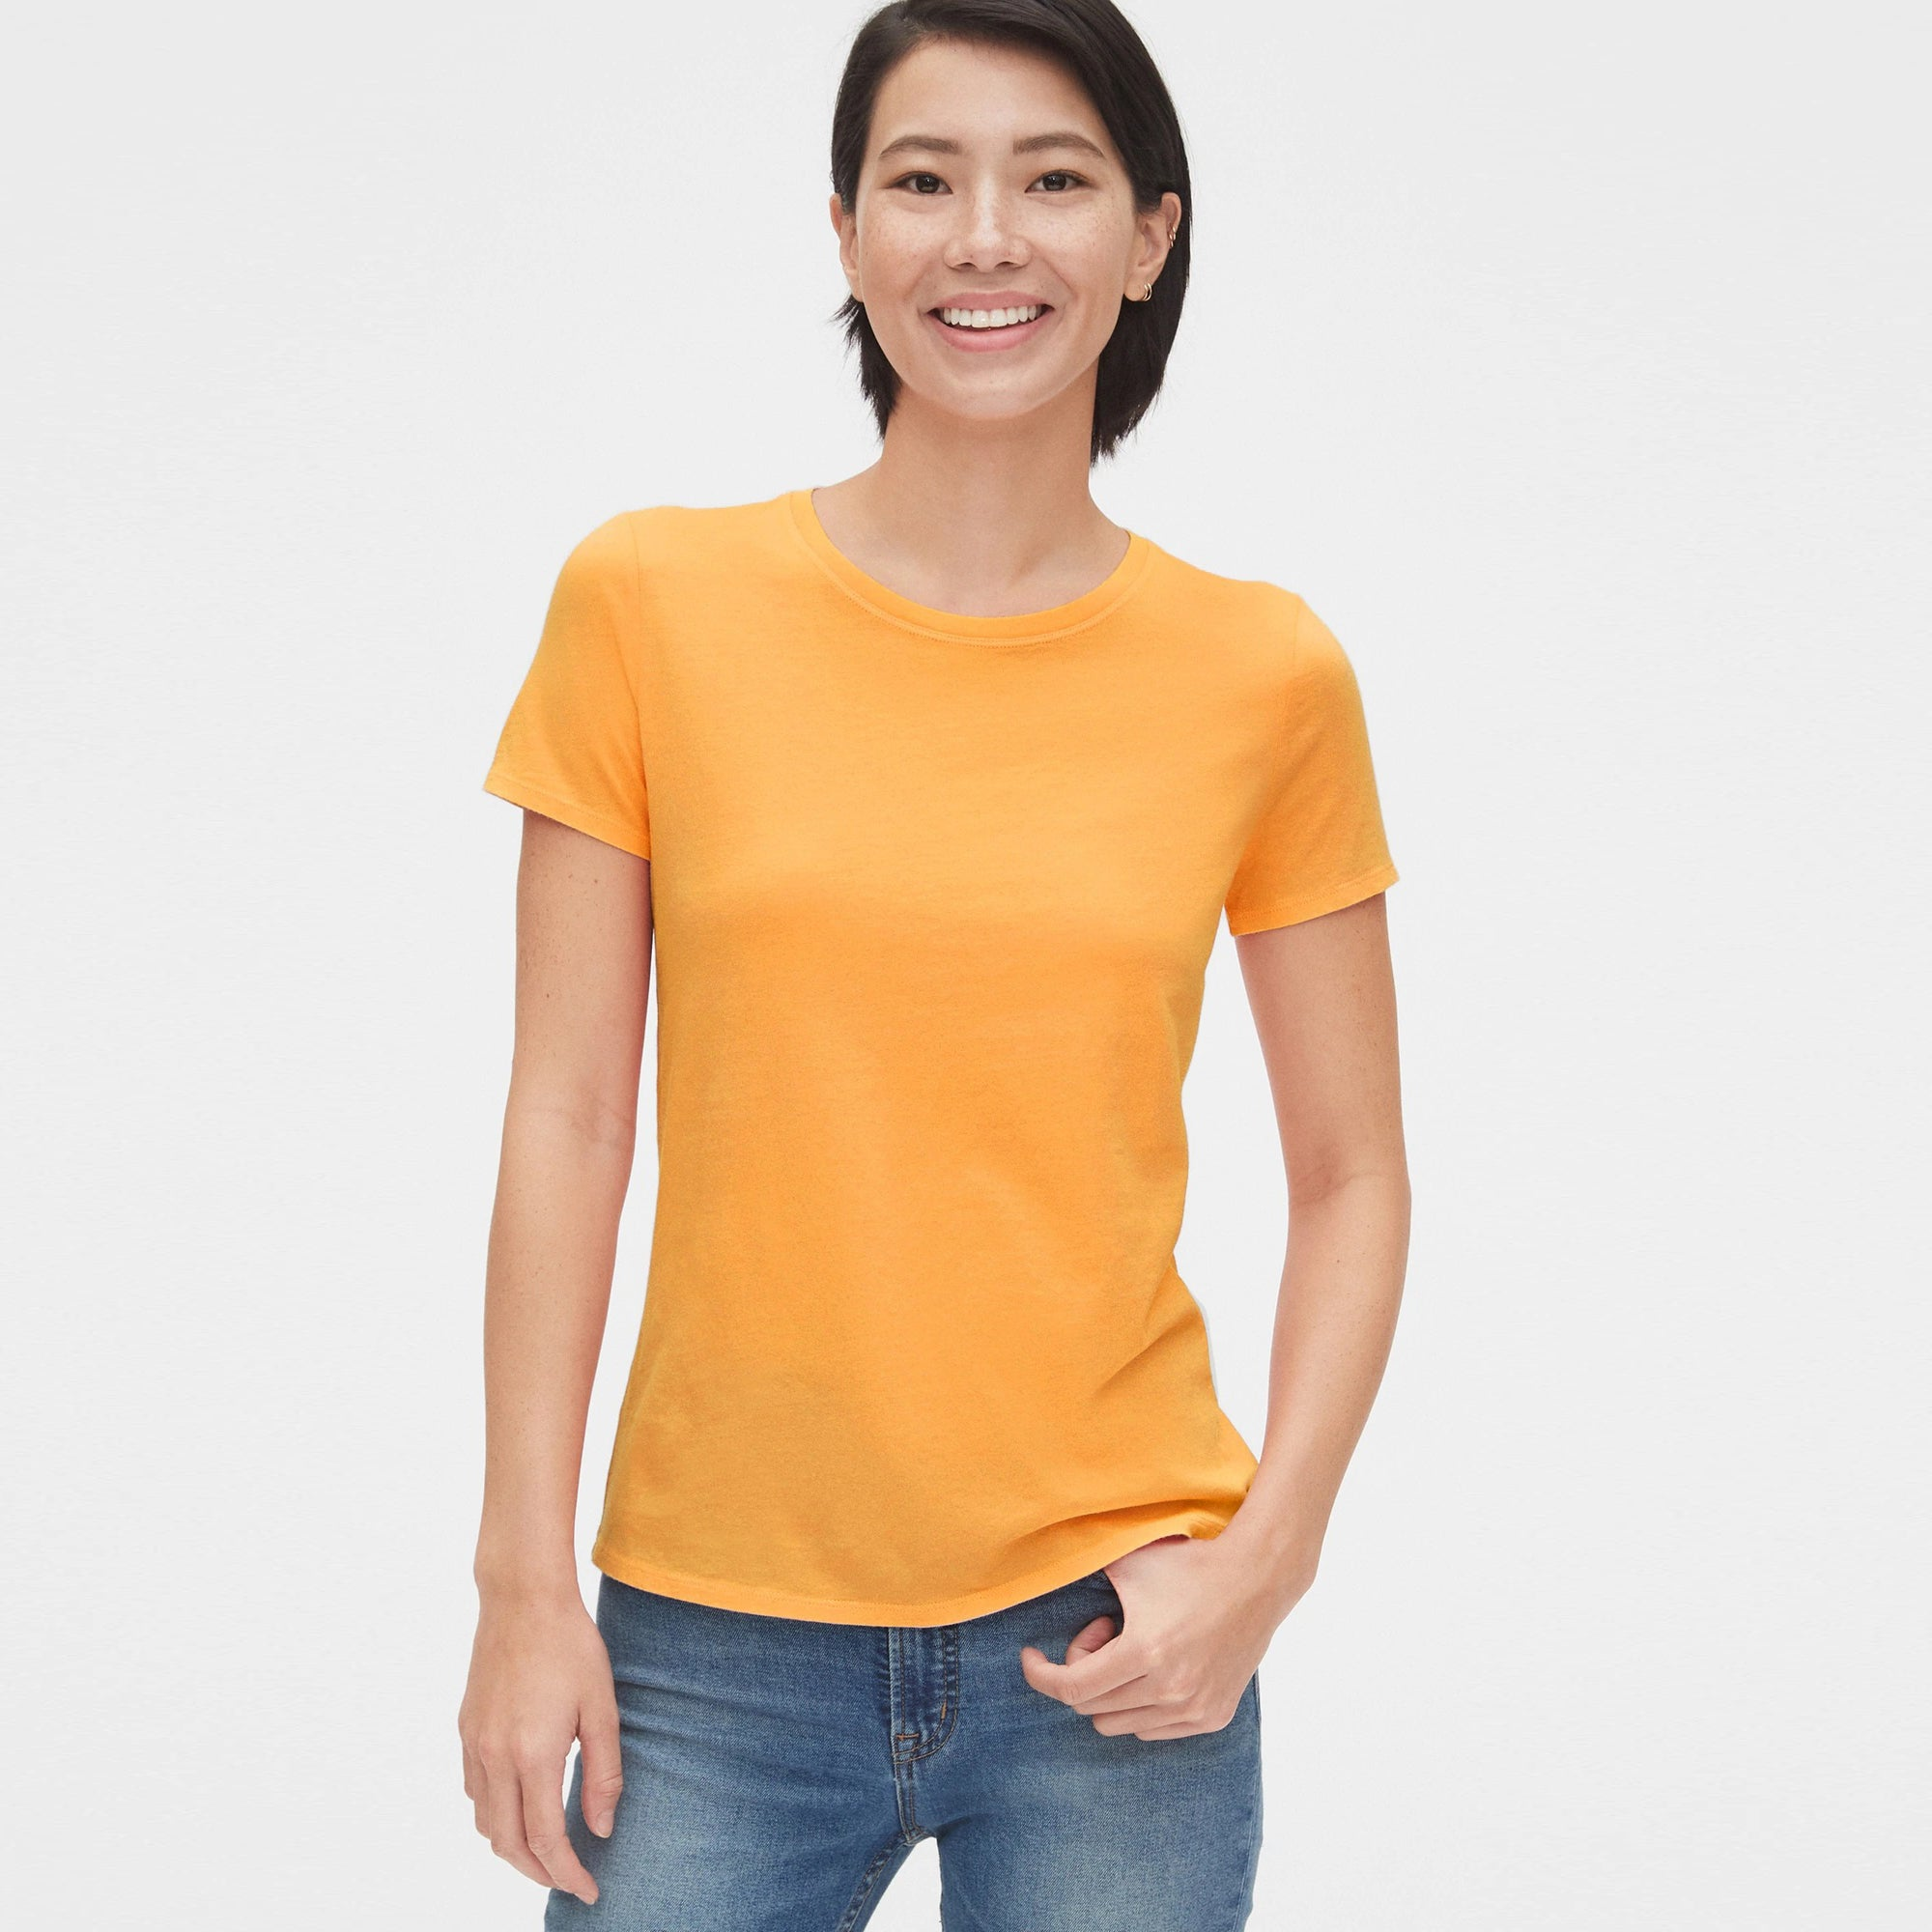 Popular Sports Half Sleeve Viscous Tee Shirt For Women-Yellow-NA11143